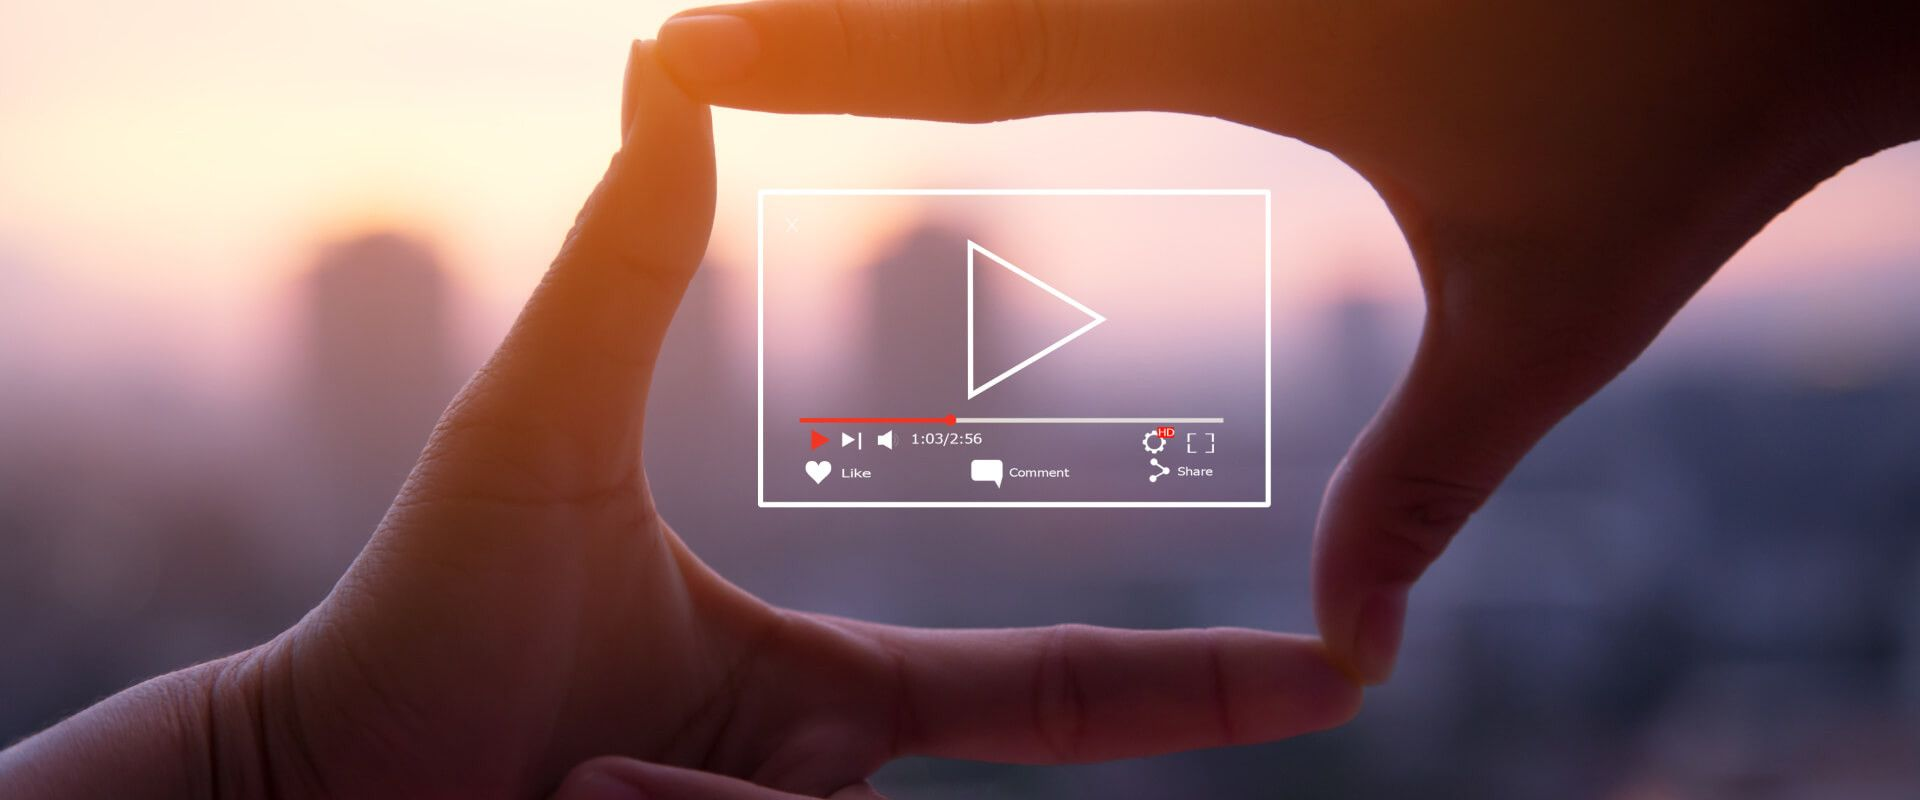 Tips to Promote Your Product Through Video Marketing